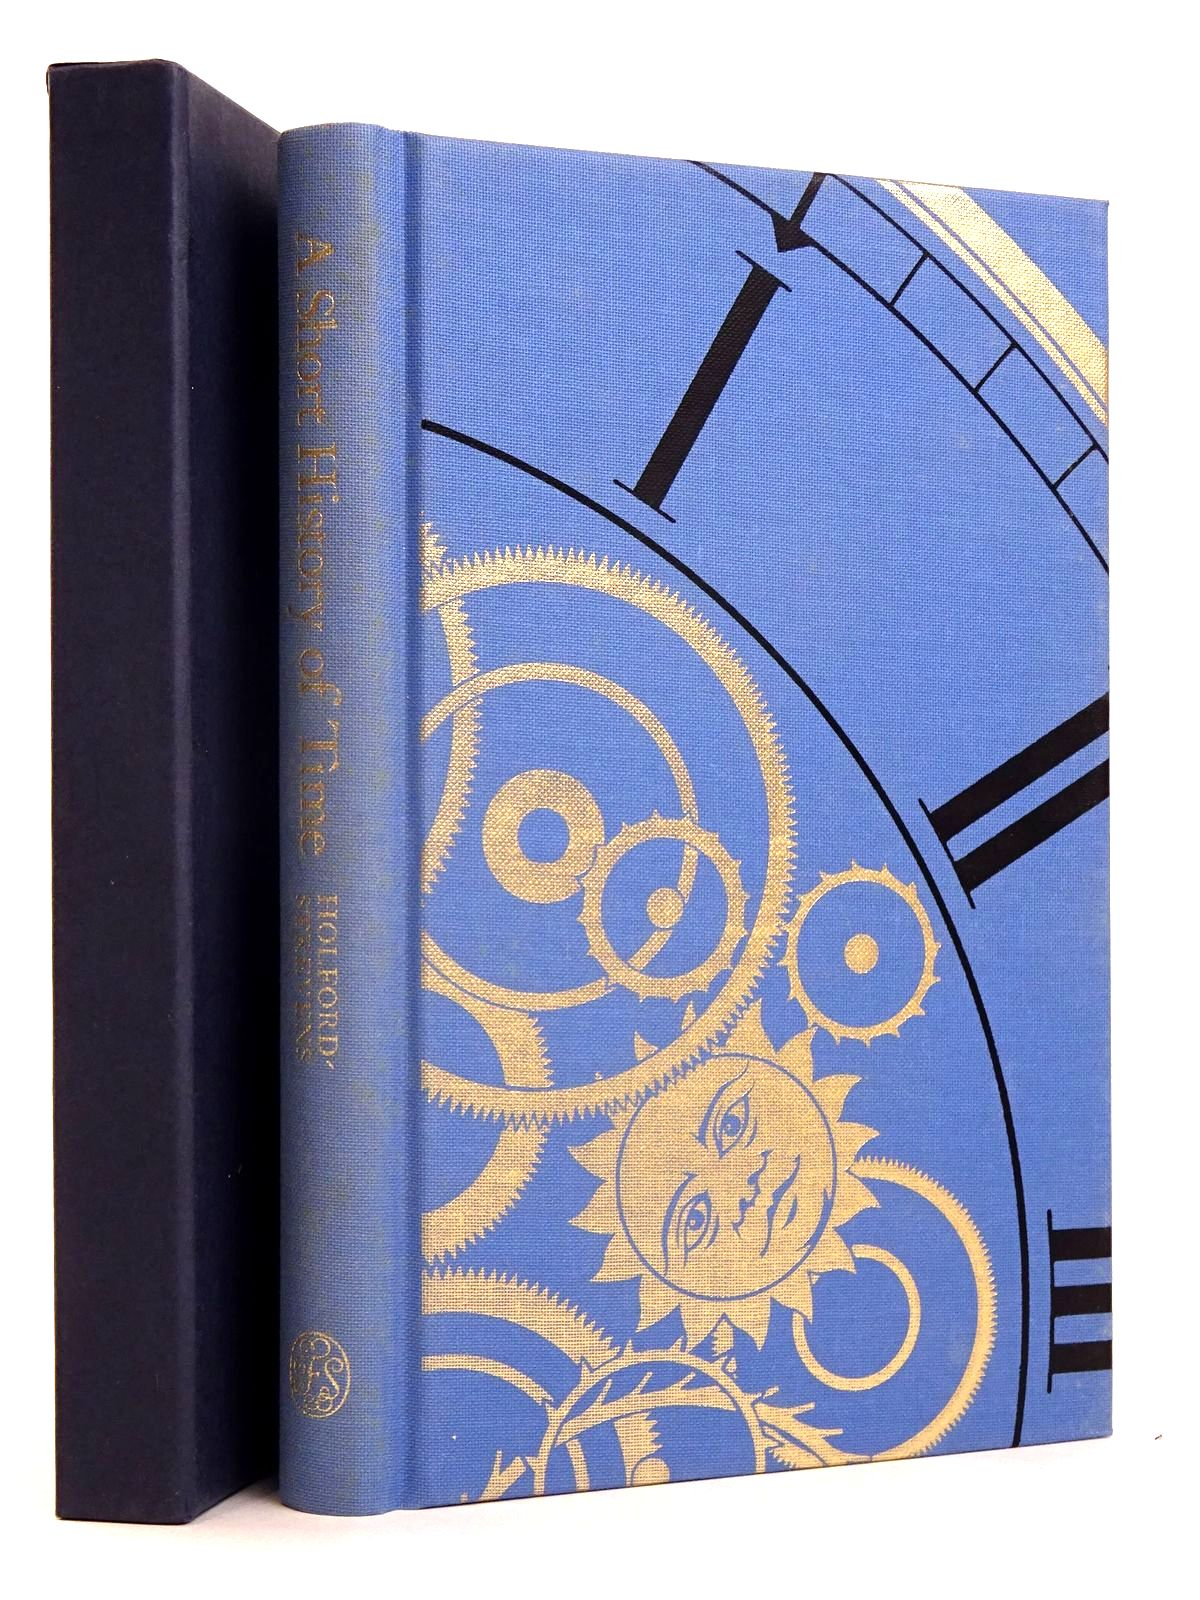 Photo of A SHORT HISTORY OF TIME written by Holford-Strevens, Leofranc published by Folio Society (STOCK CODE: 1818502)  for sale by Stella & Rose's Books